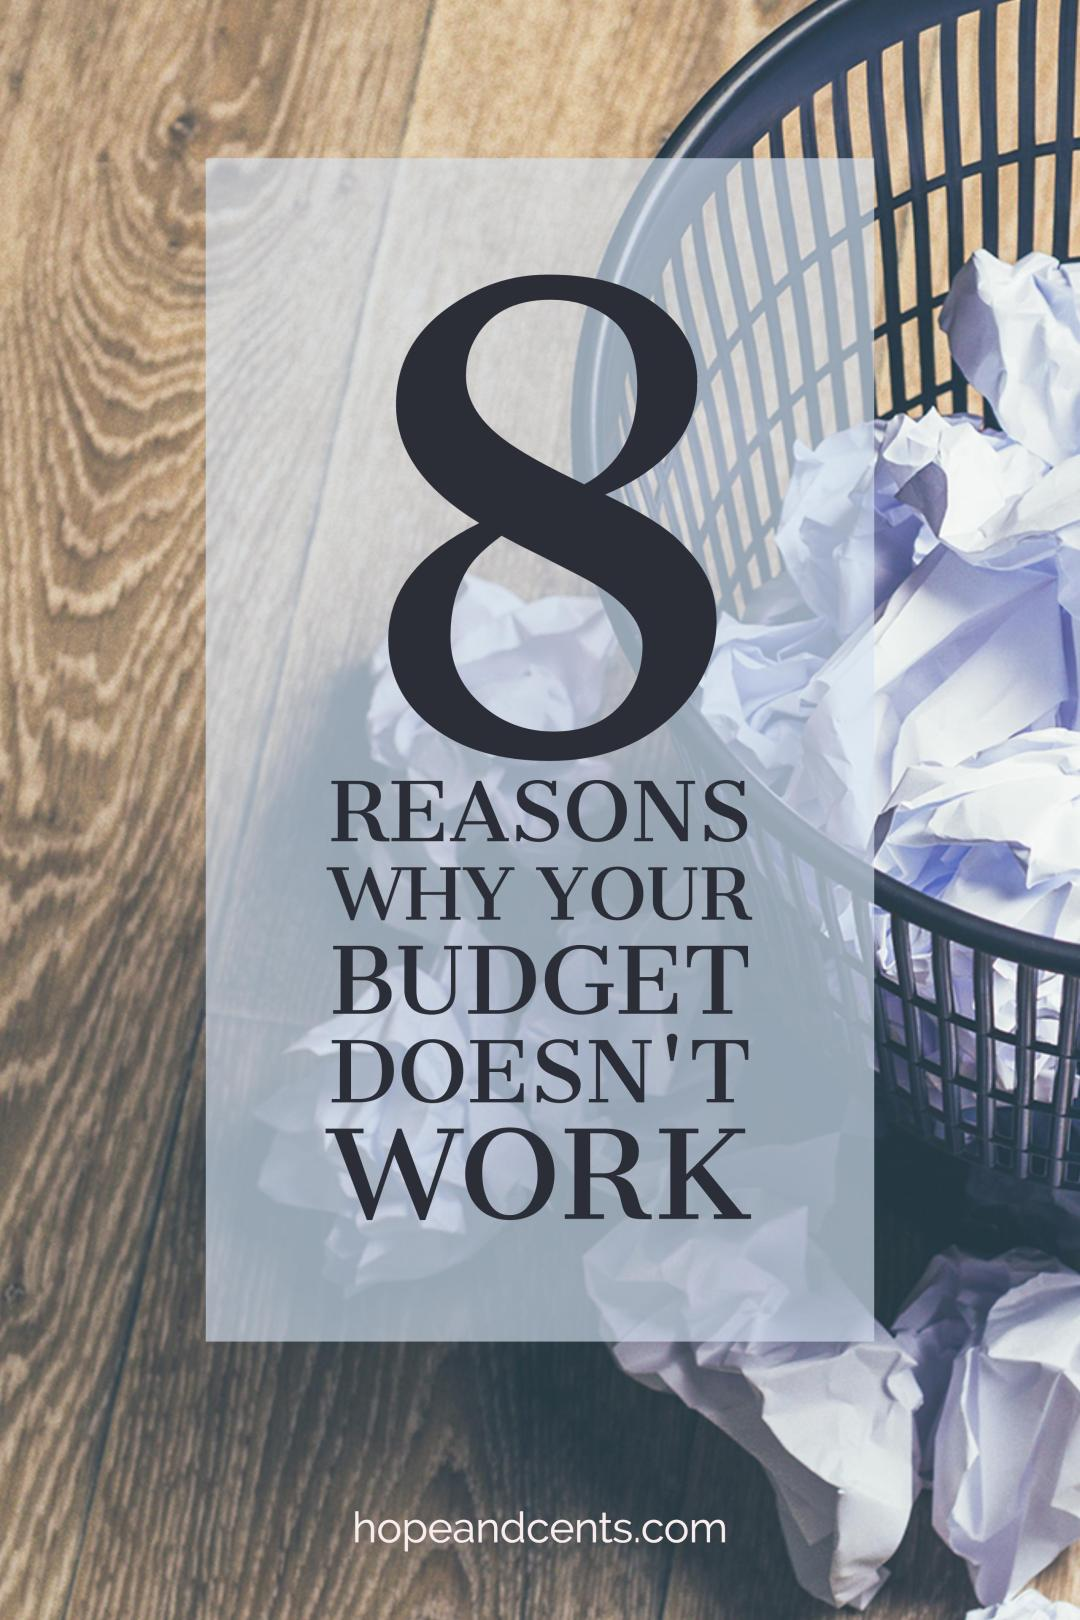 There are many reasons why some approaches to budgeting don't work, leading us to give up or avoid the process altogether. If you've attempted to live on a budget only to declare they don't work, read on!